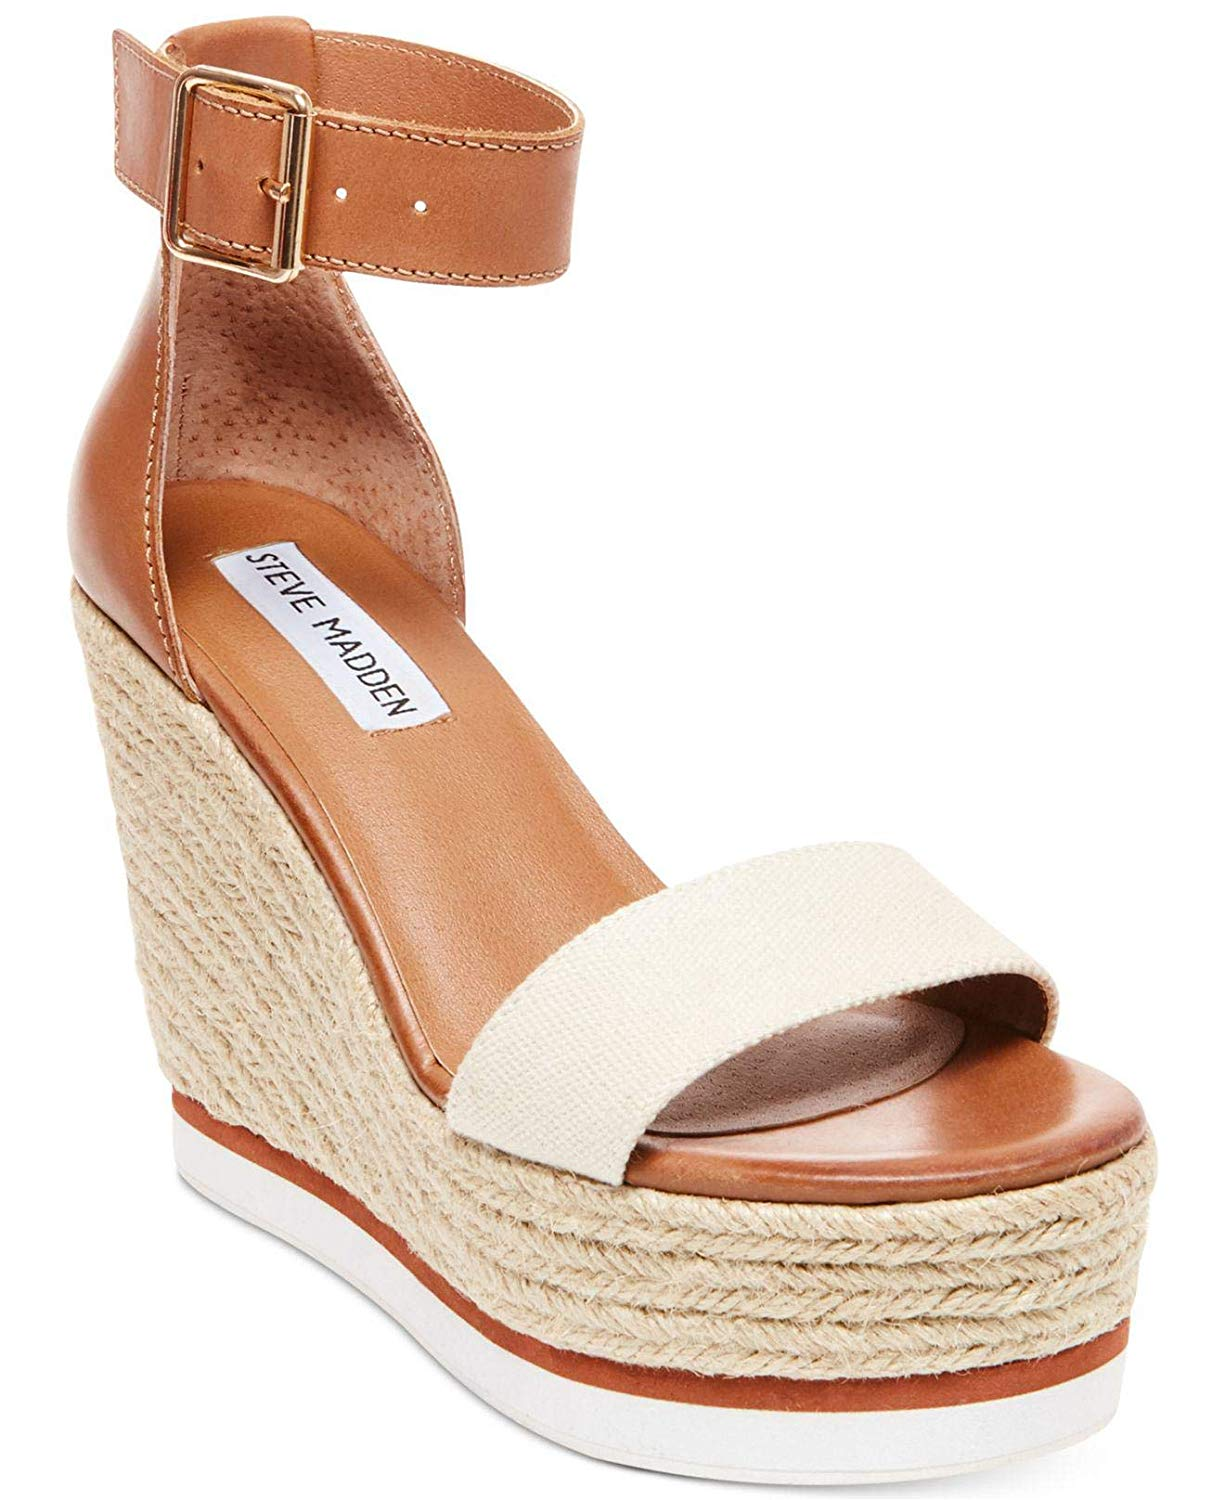 535fcfad4ae0 Get Quotations · Steve Madden Womens Veda Open Toe Special Occasion  Platform Sandals